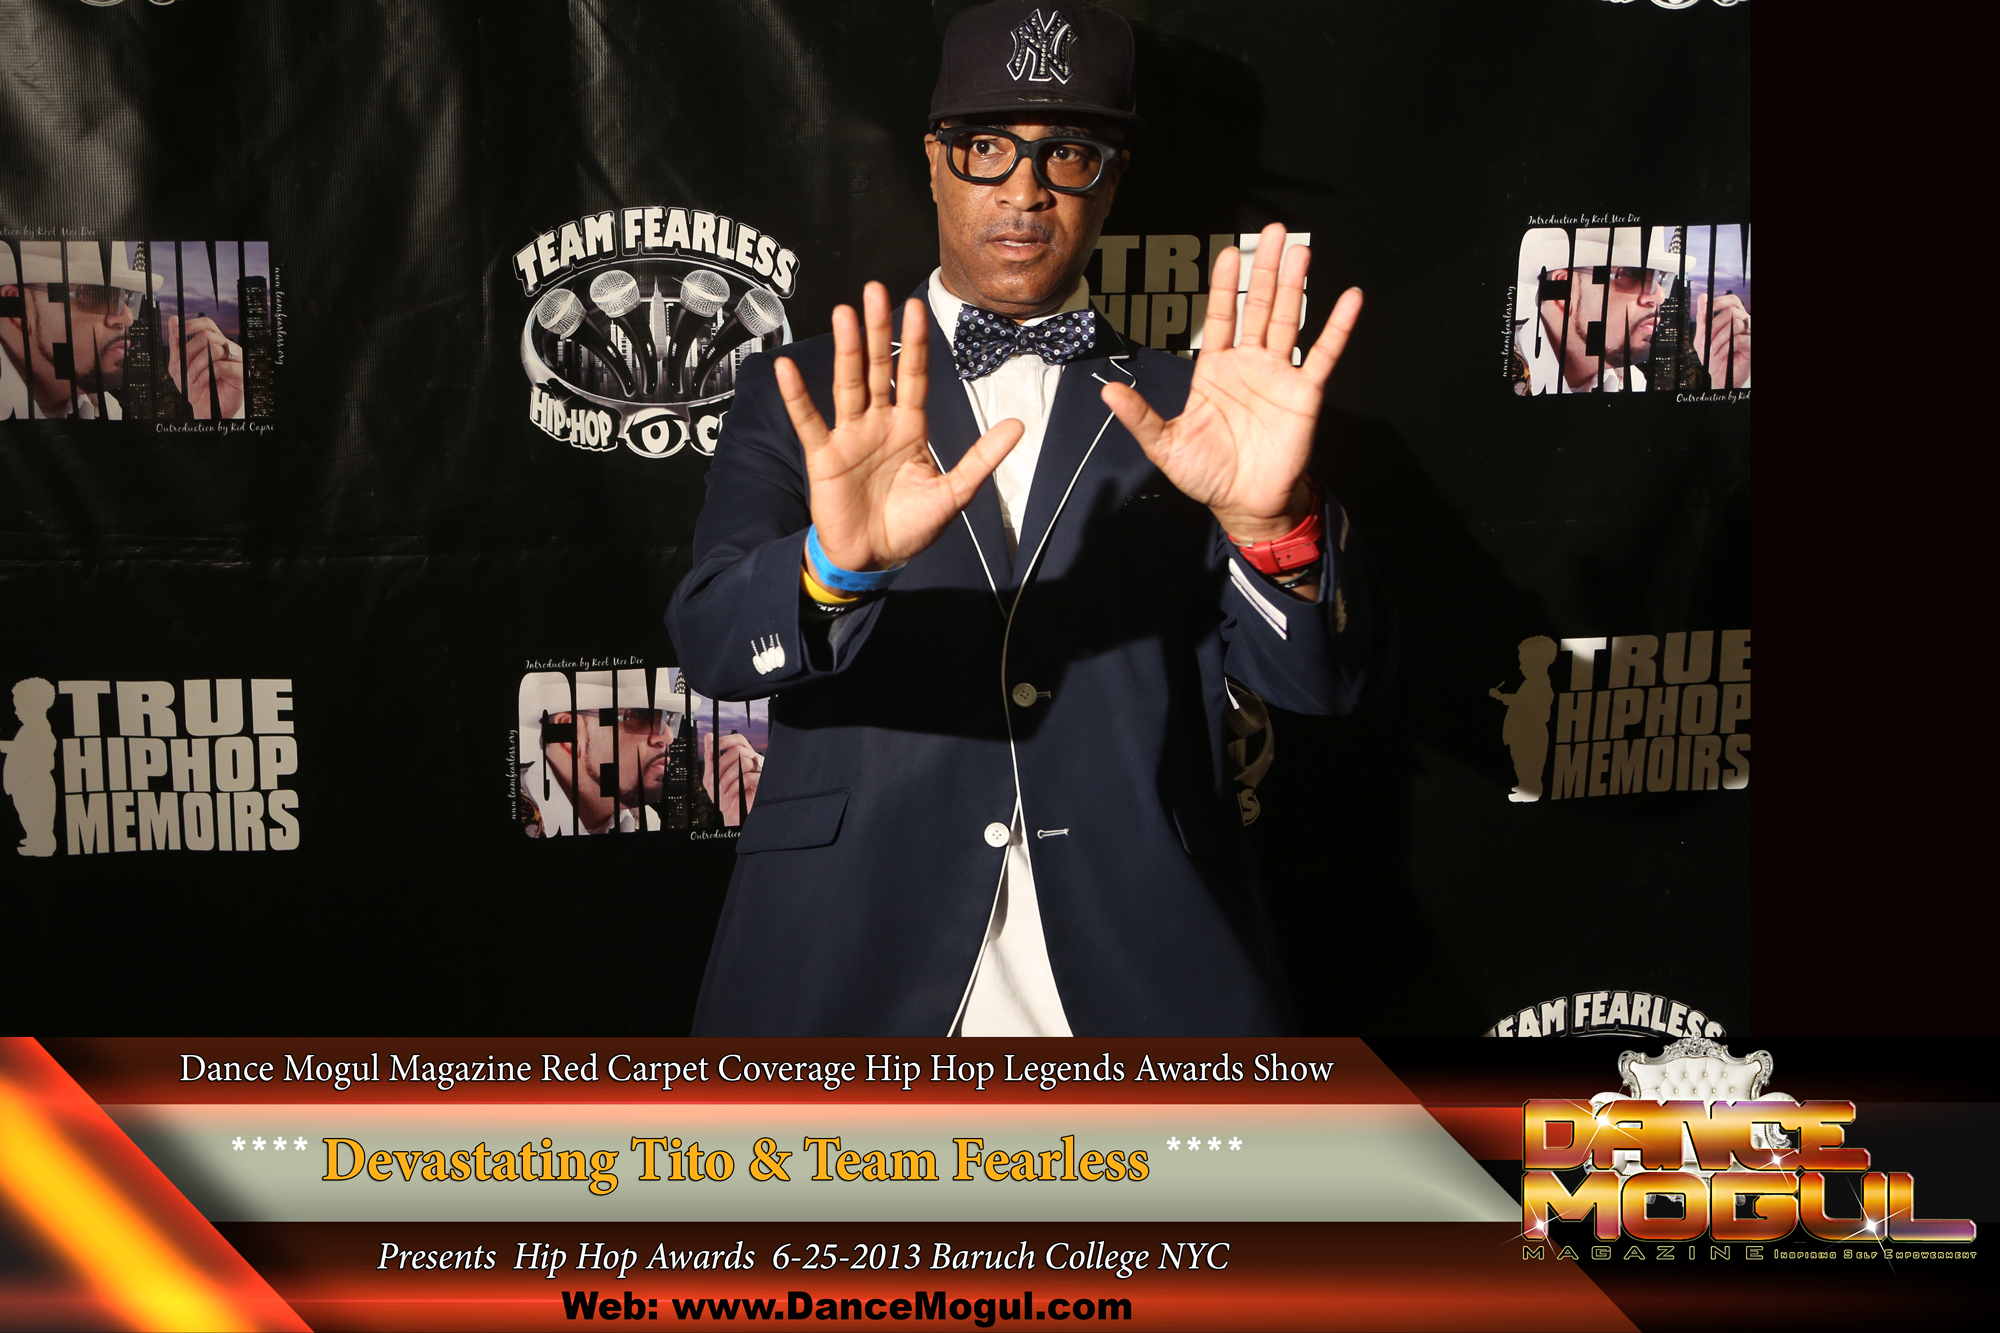 Hip Hop Legends Awards Show - Dance Mogul Magazine